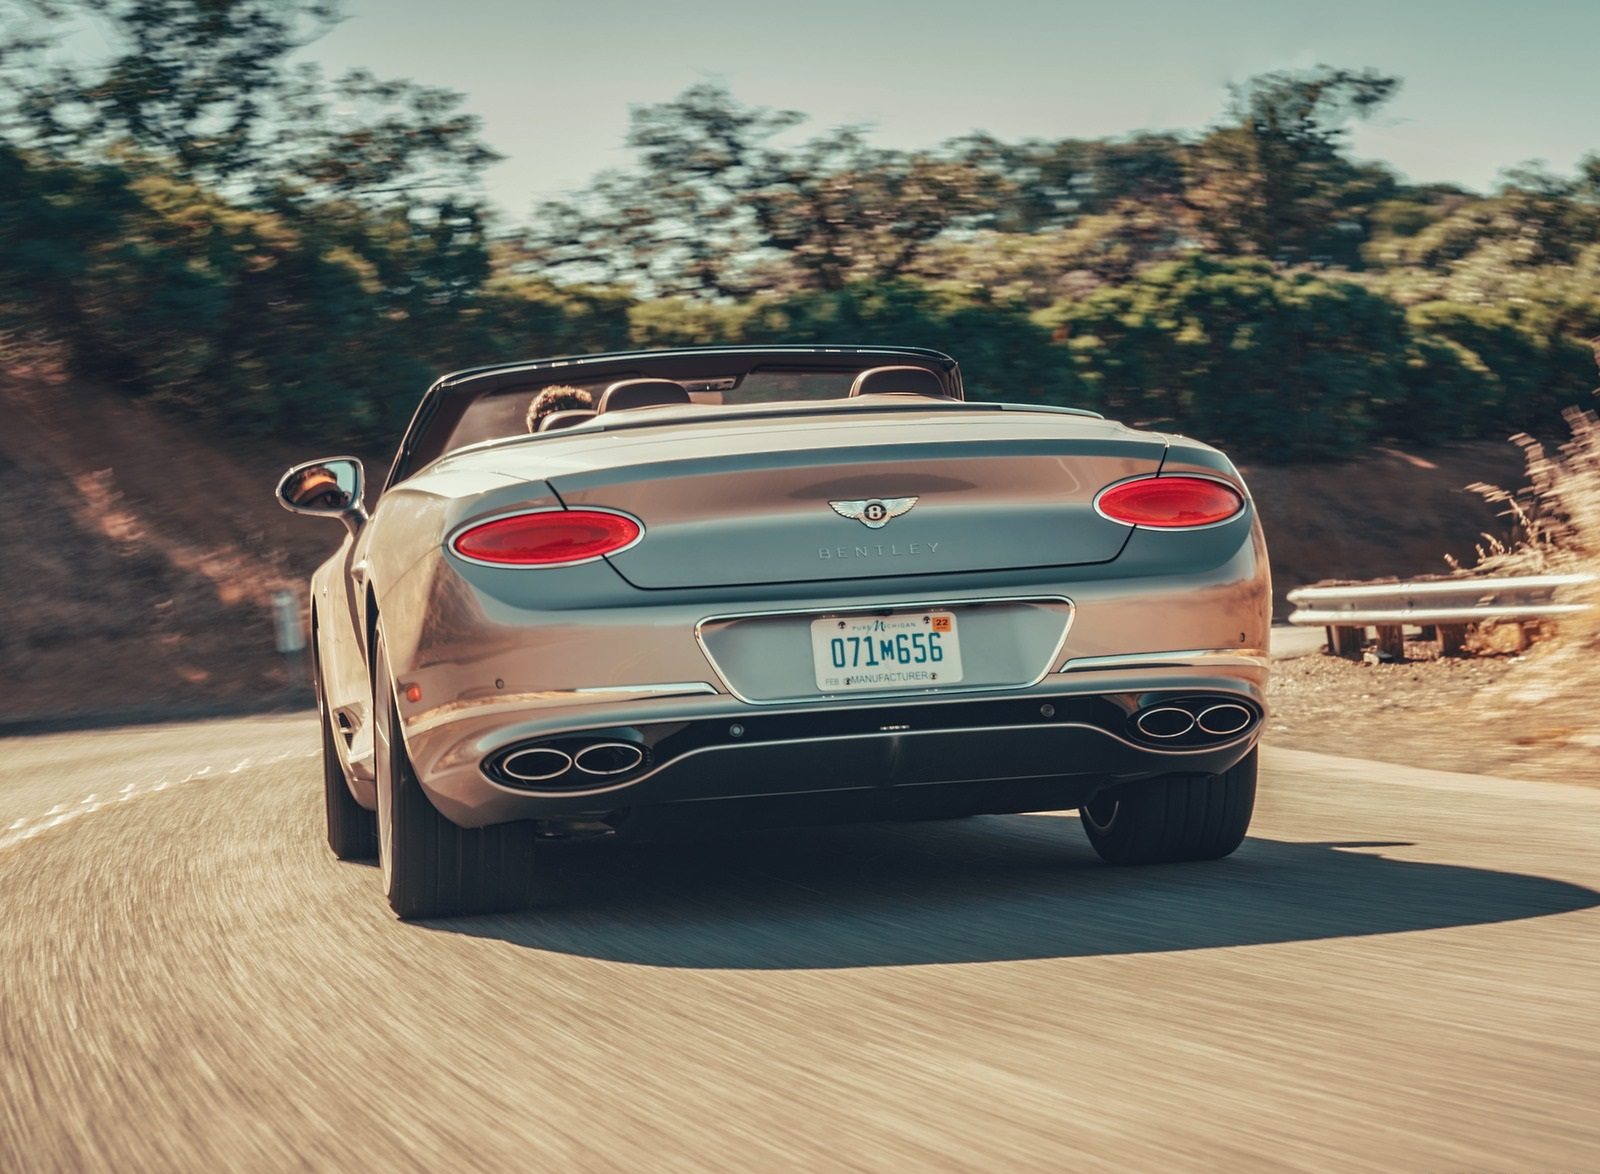 2020 Bentley Continental GT V8 Convertible Rear Wallpapers #42 of 111